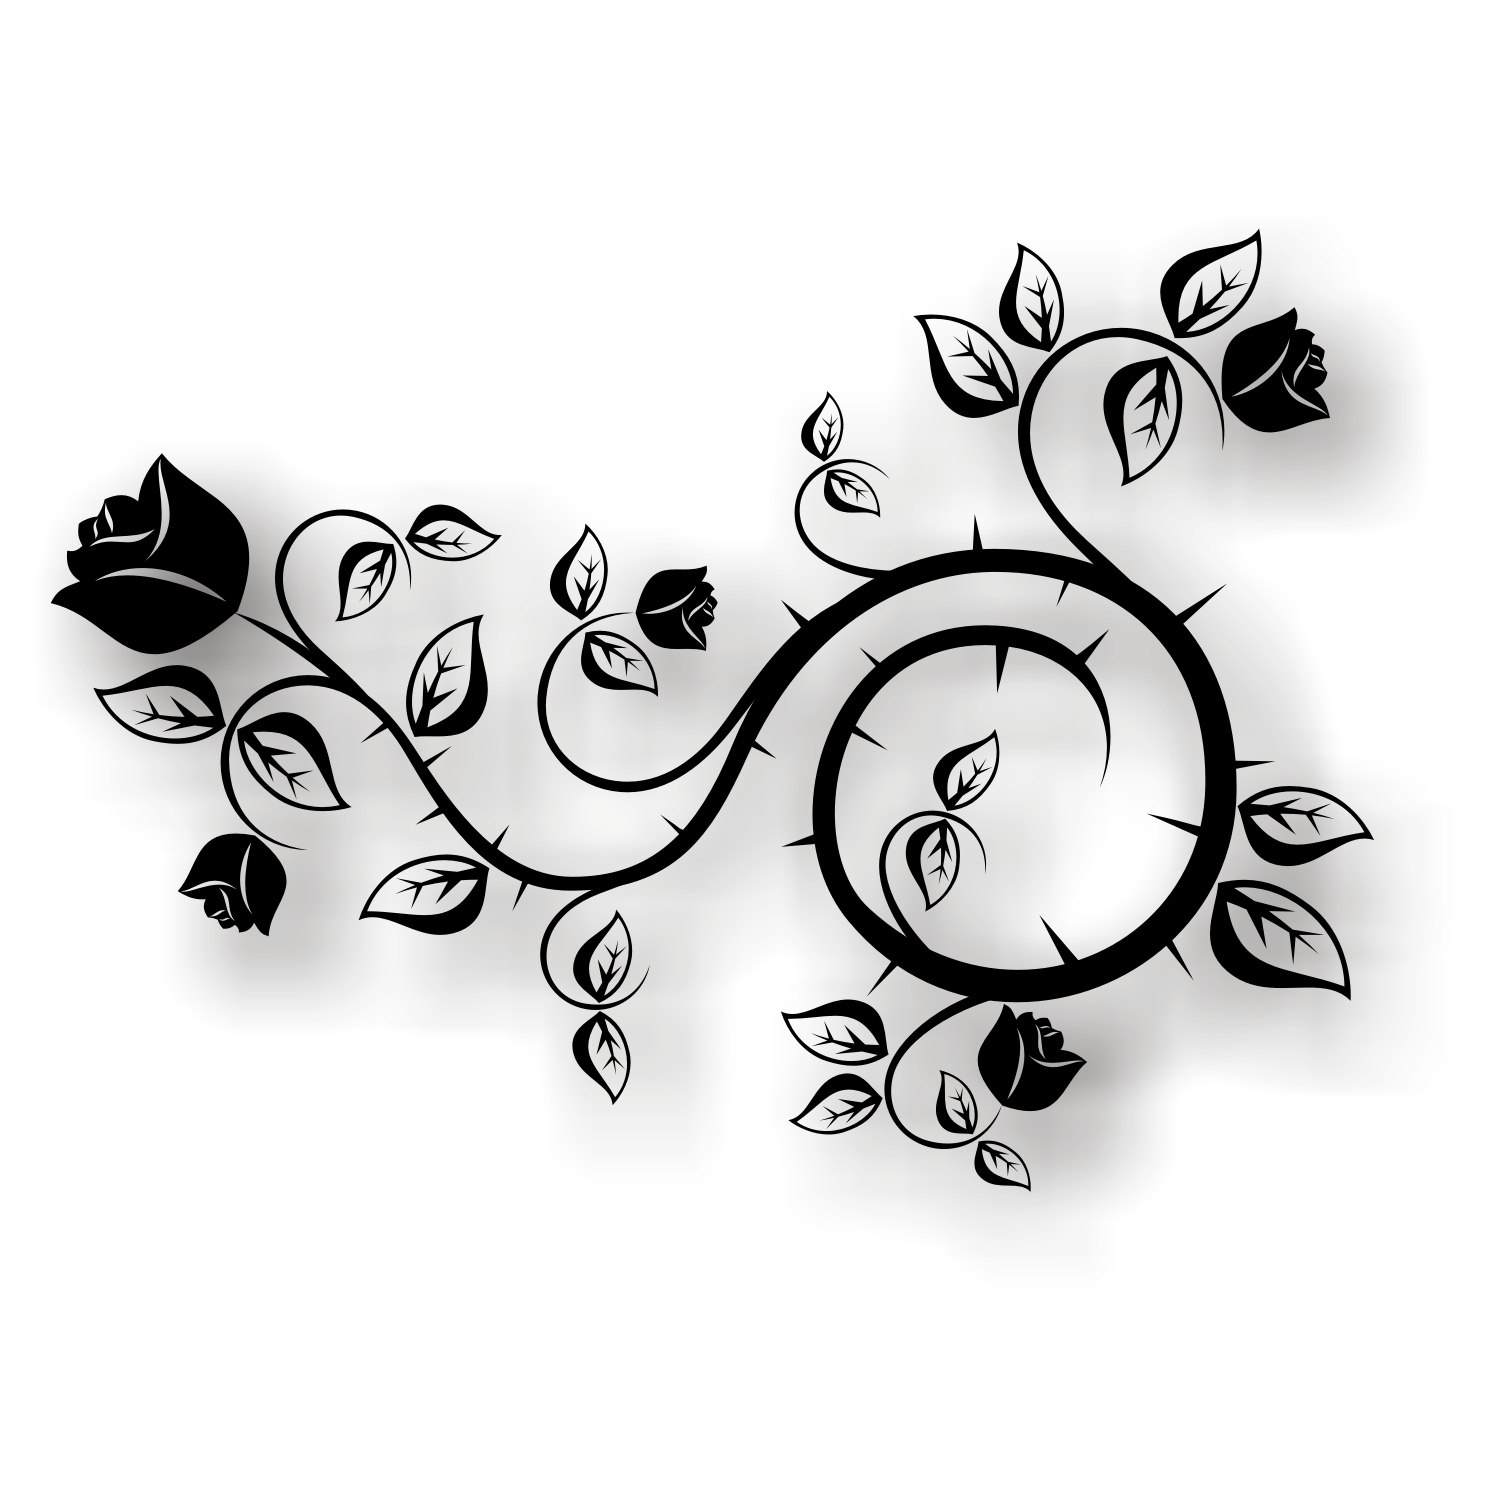 14 Rose Drawing Vector Images